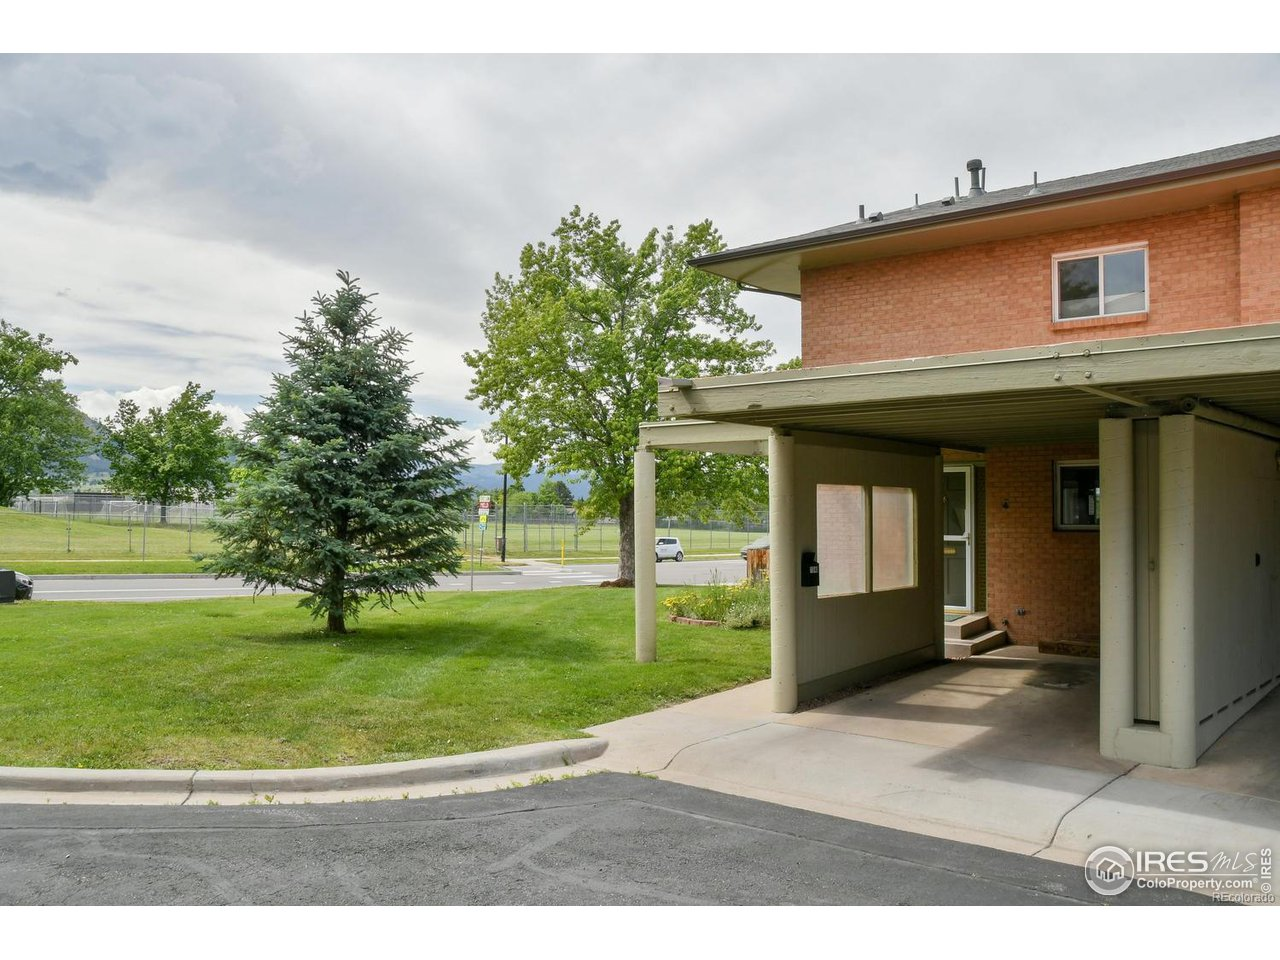 1540 Chambers Dr 4-41, Boulder CO 80305